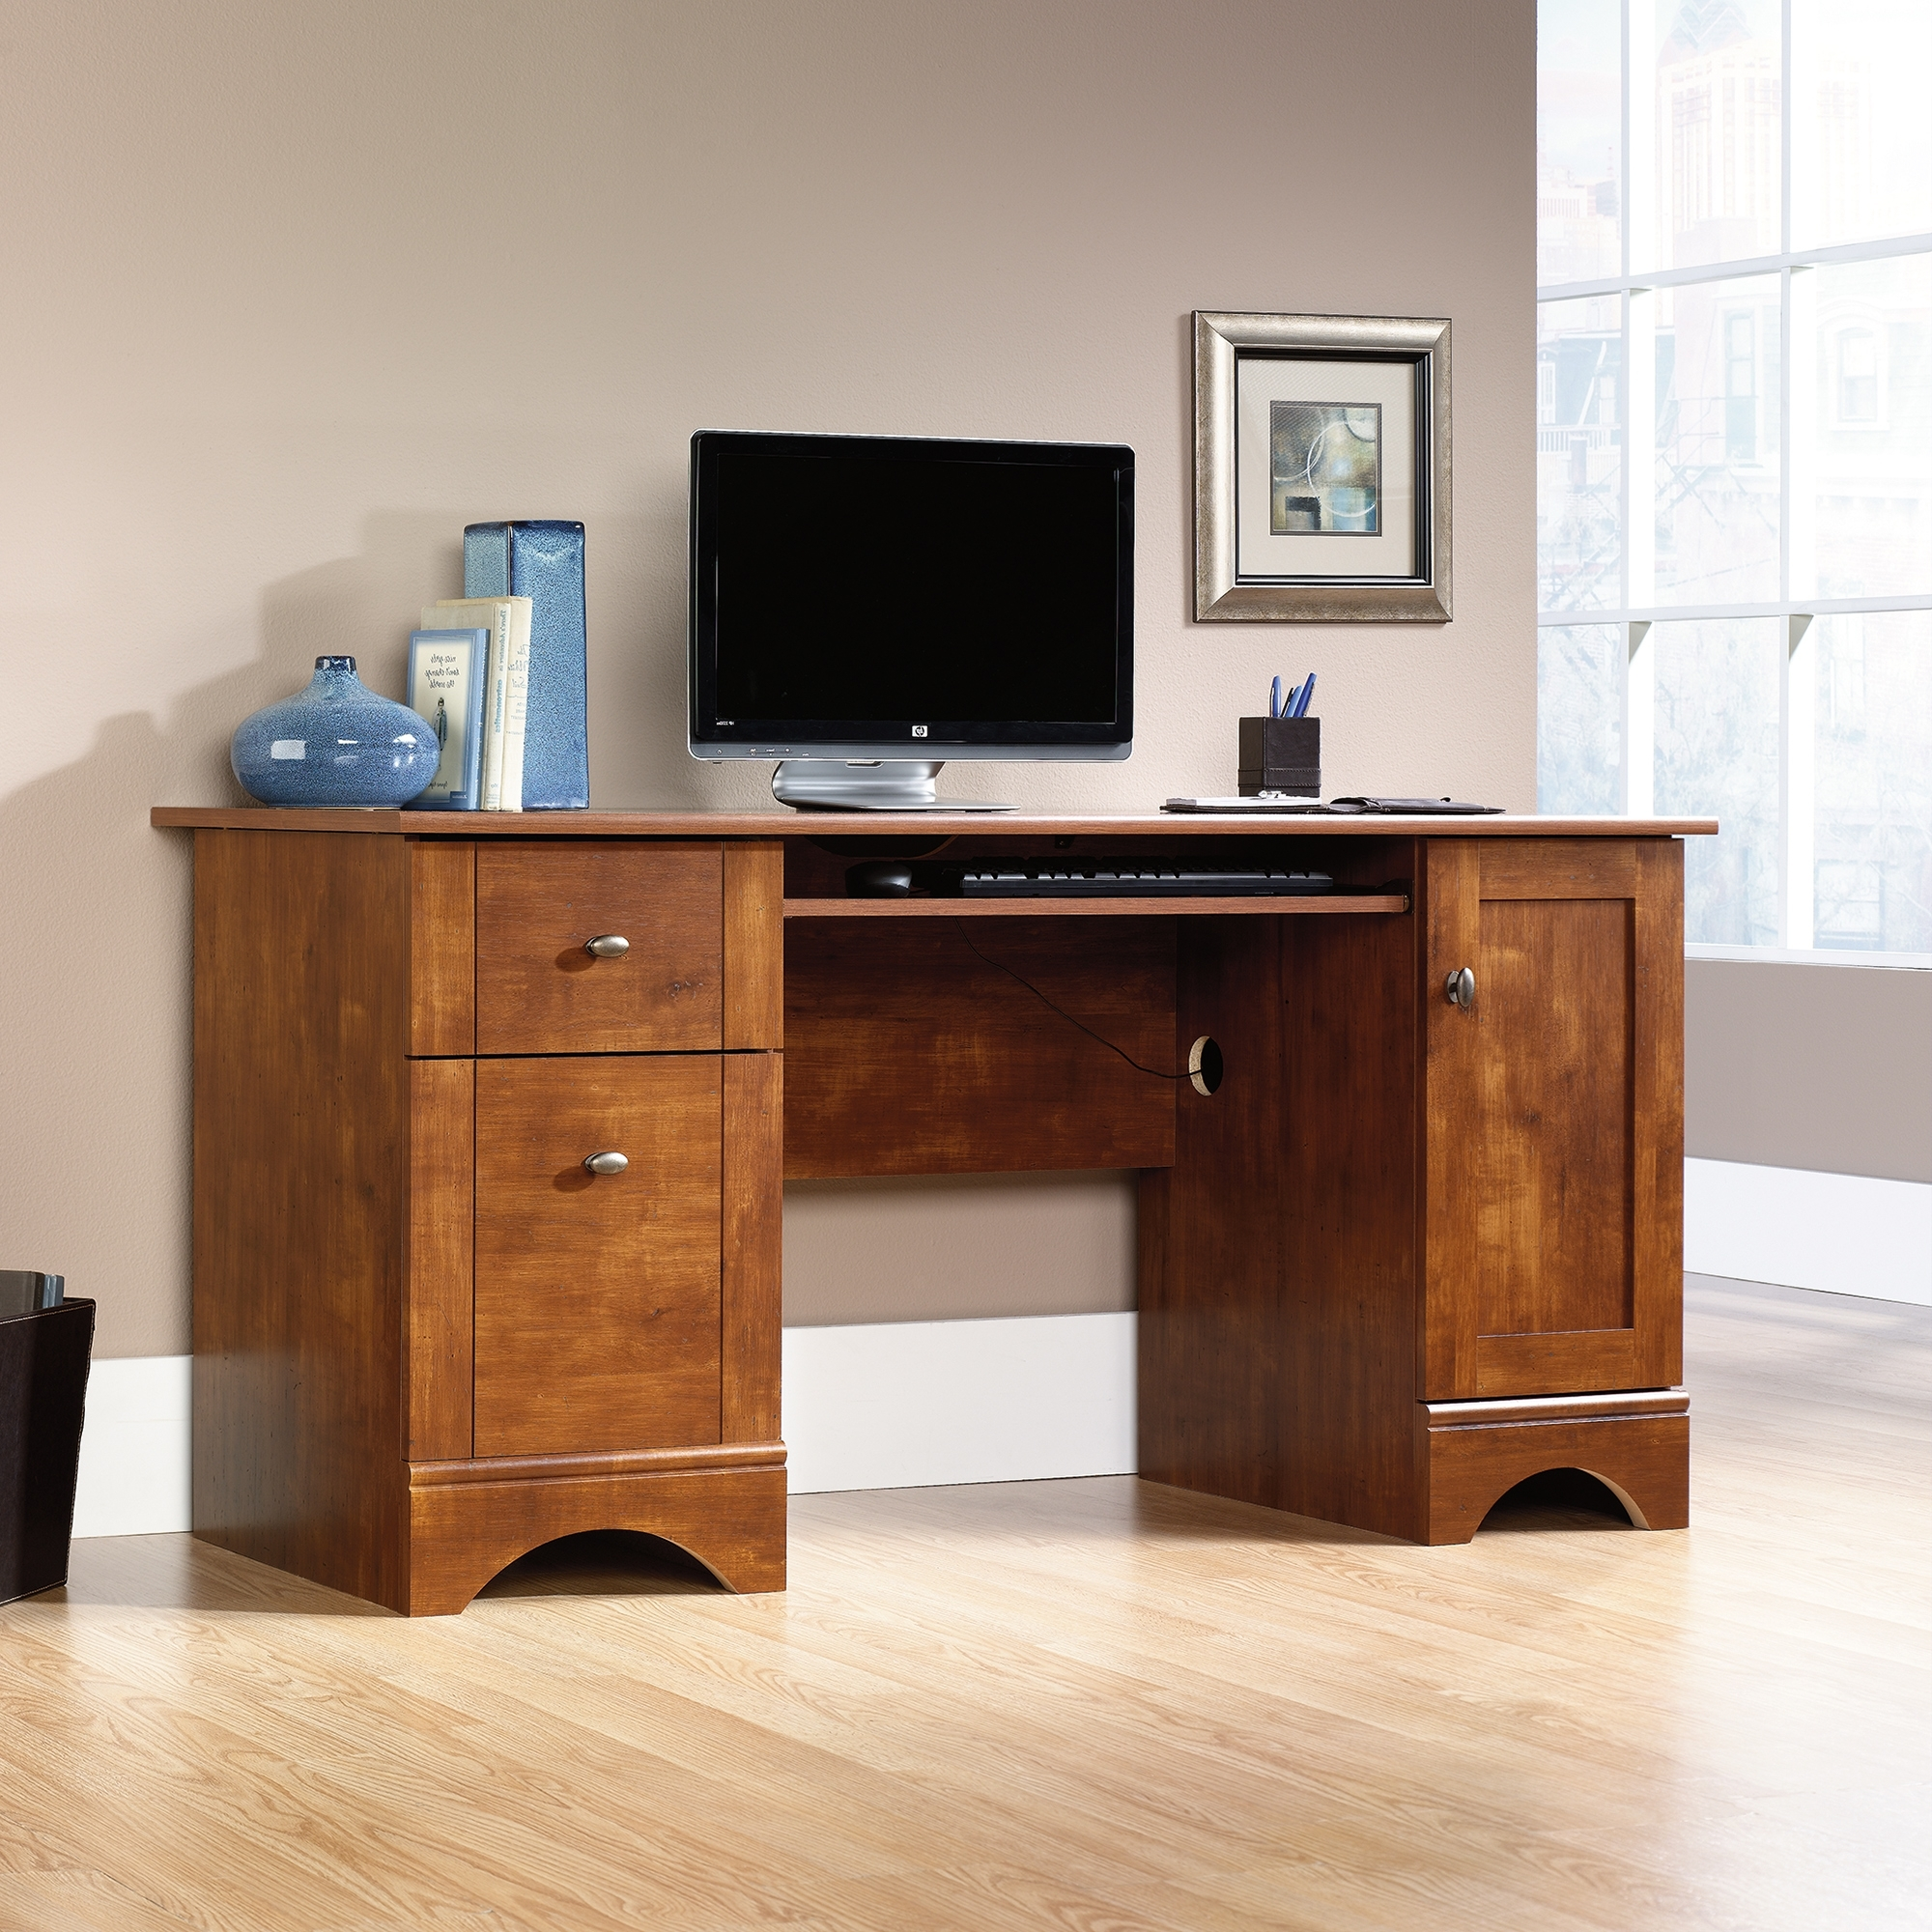 Sauder Select Computer Desk (402375) – Sauder Pertaining To Most Current Enclosed Computer Desks (View 18 of 20)